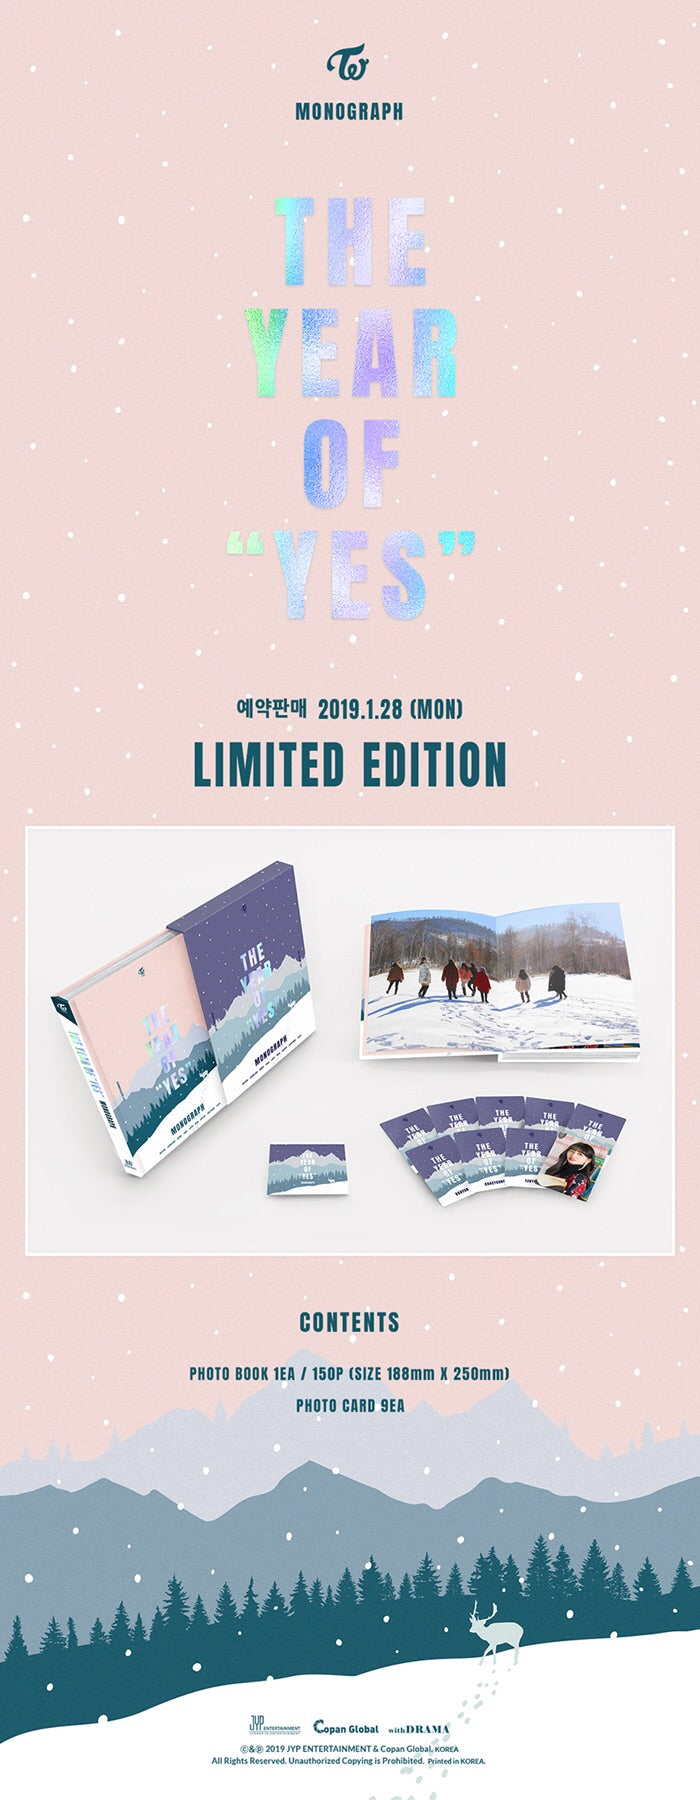 TWICE - Twice Monograph (Year of Yes) - Limited Edition - Jetzt lieferbar